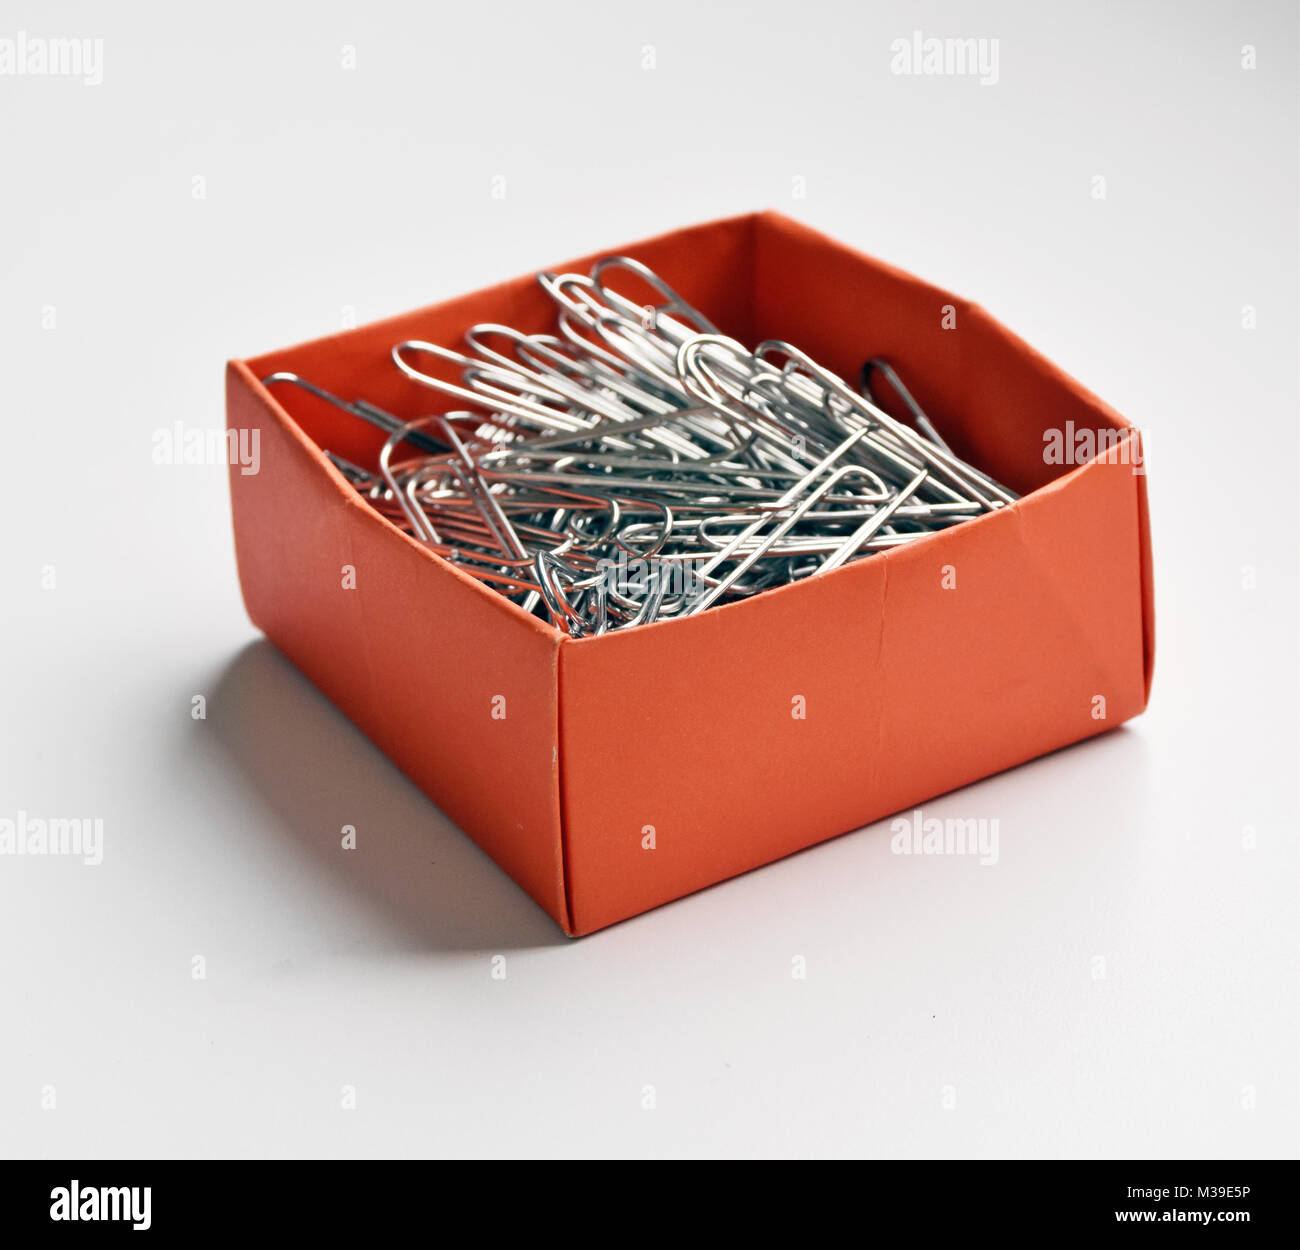 Stationary Boxes Stationery Boxes Filled With Elastic Bands Paper Clips Staples